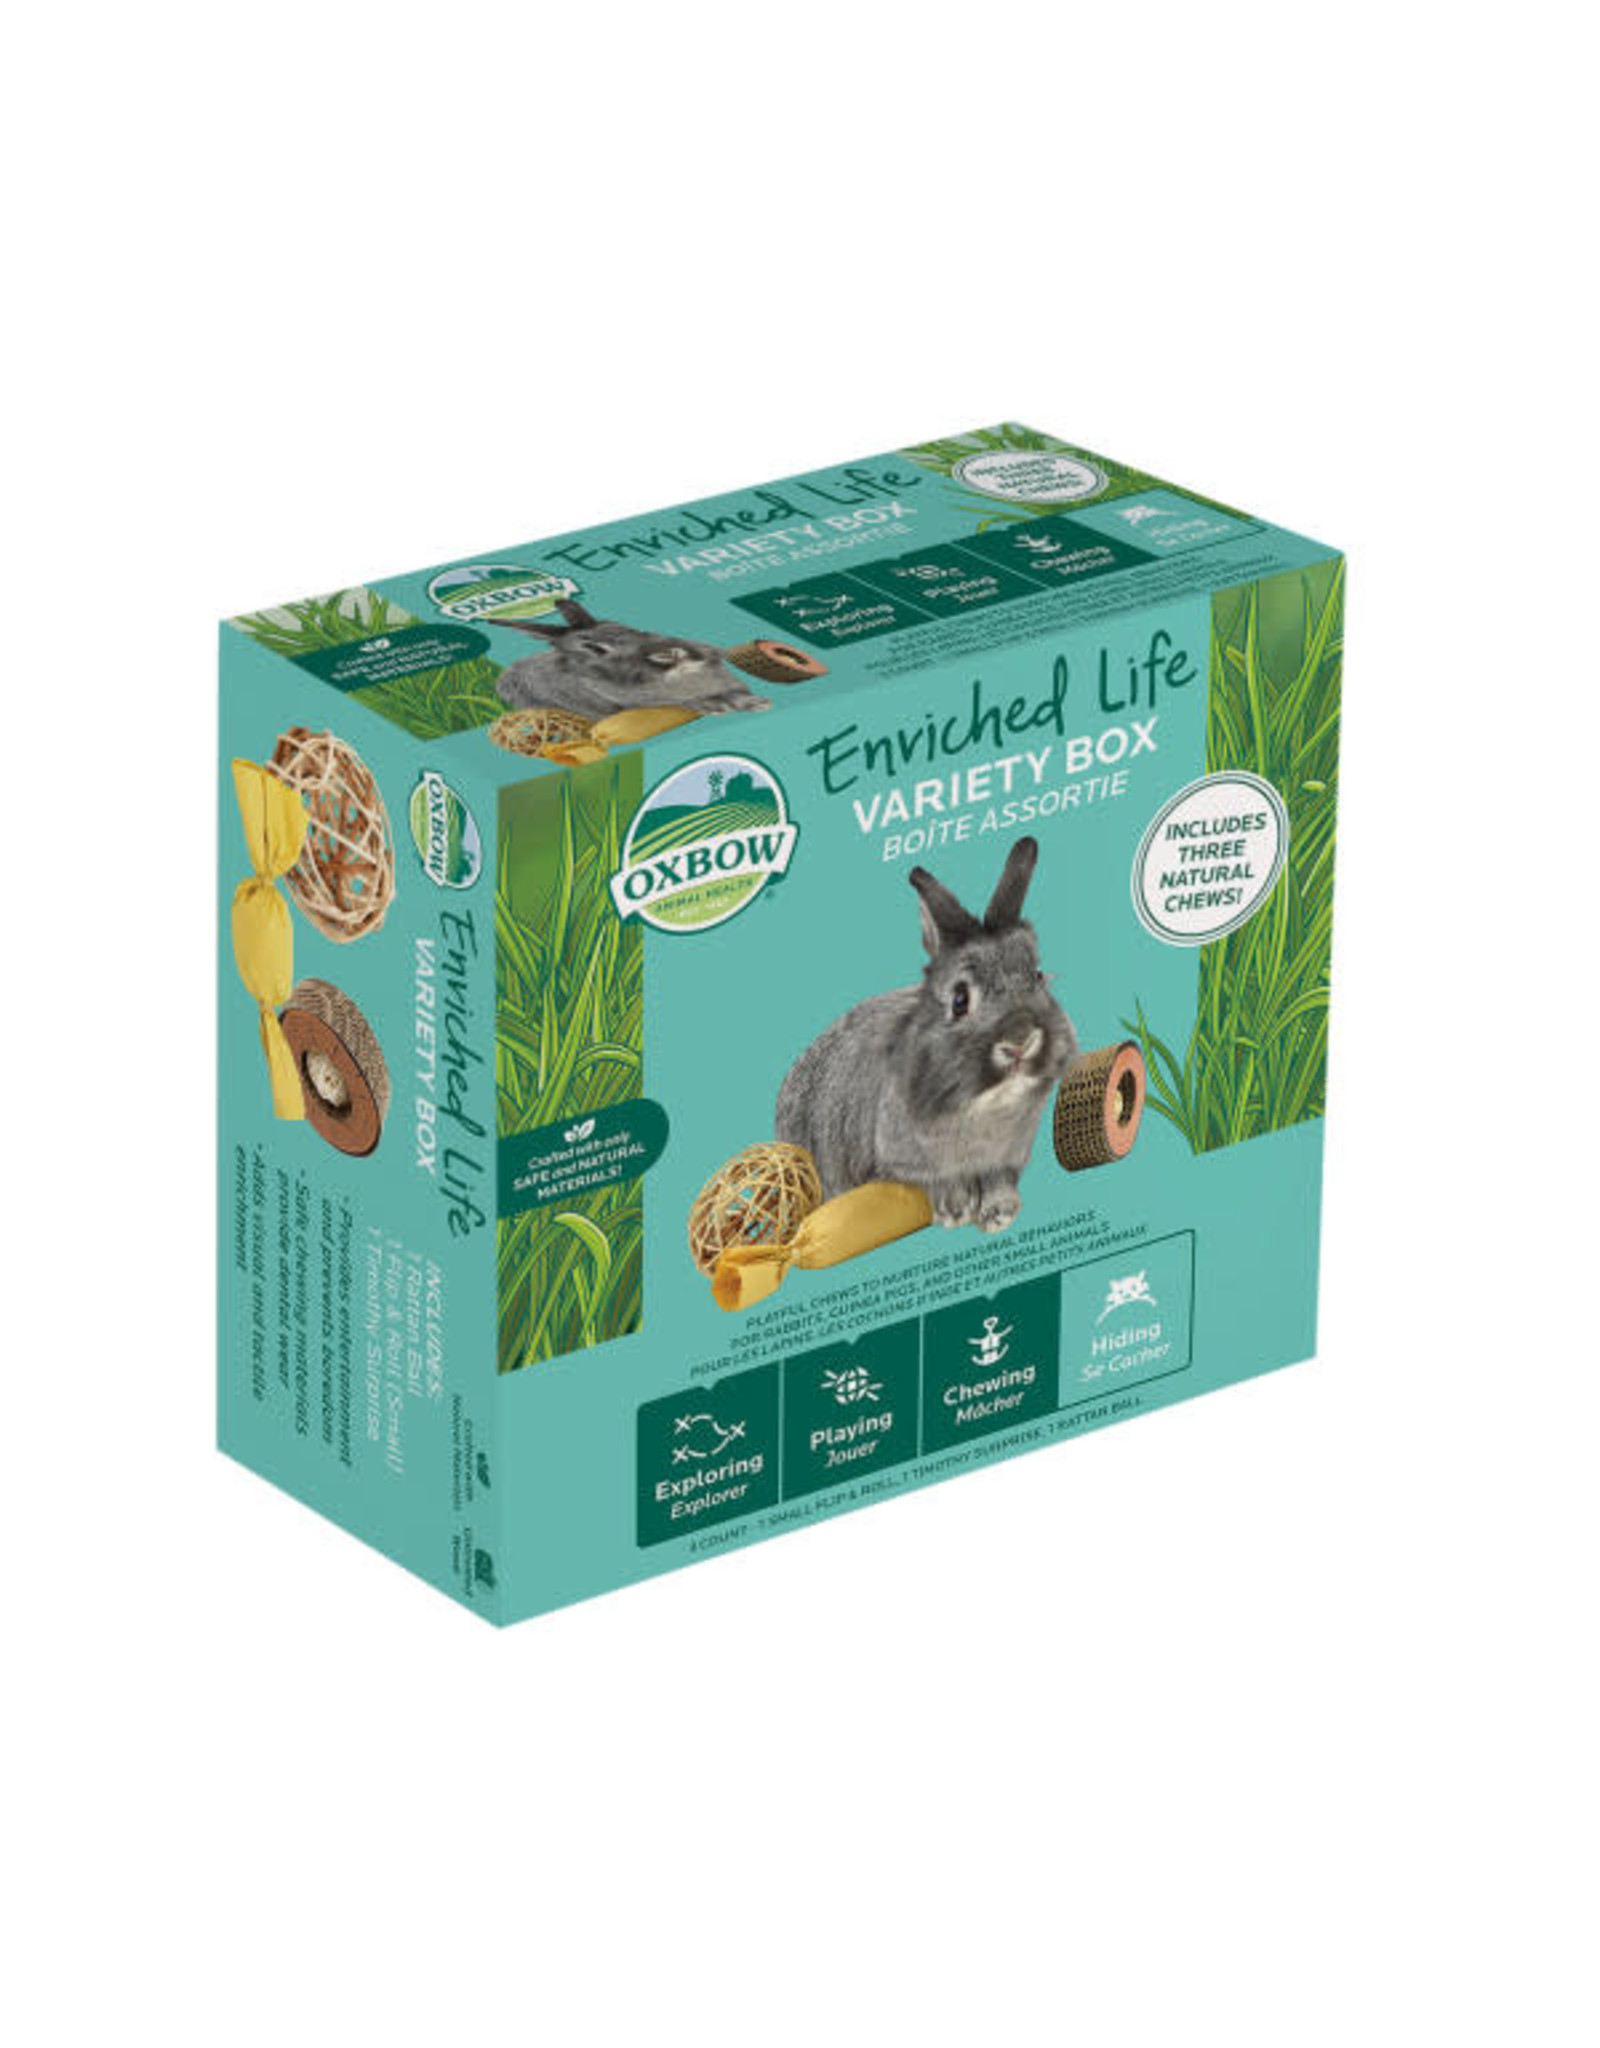 Oxbow Oxbow Enriched Life Combo Box